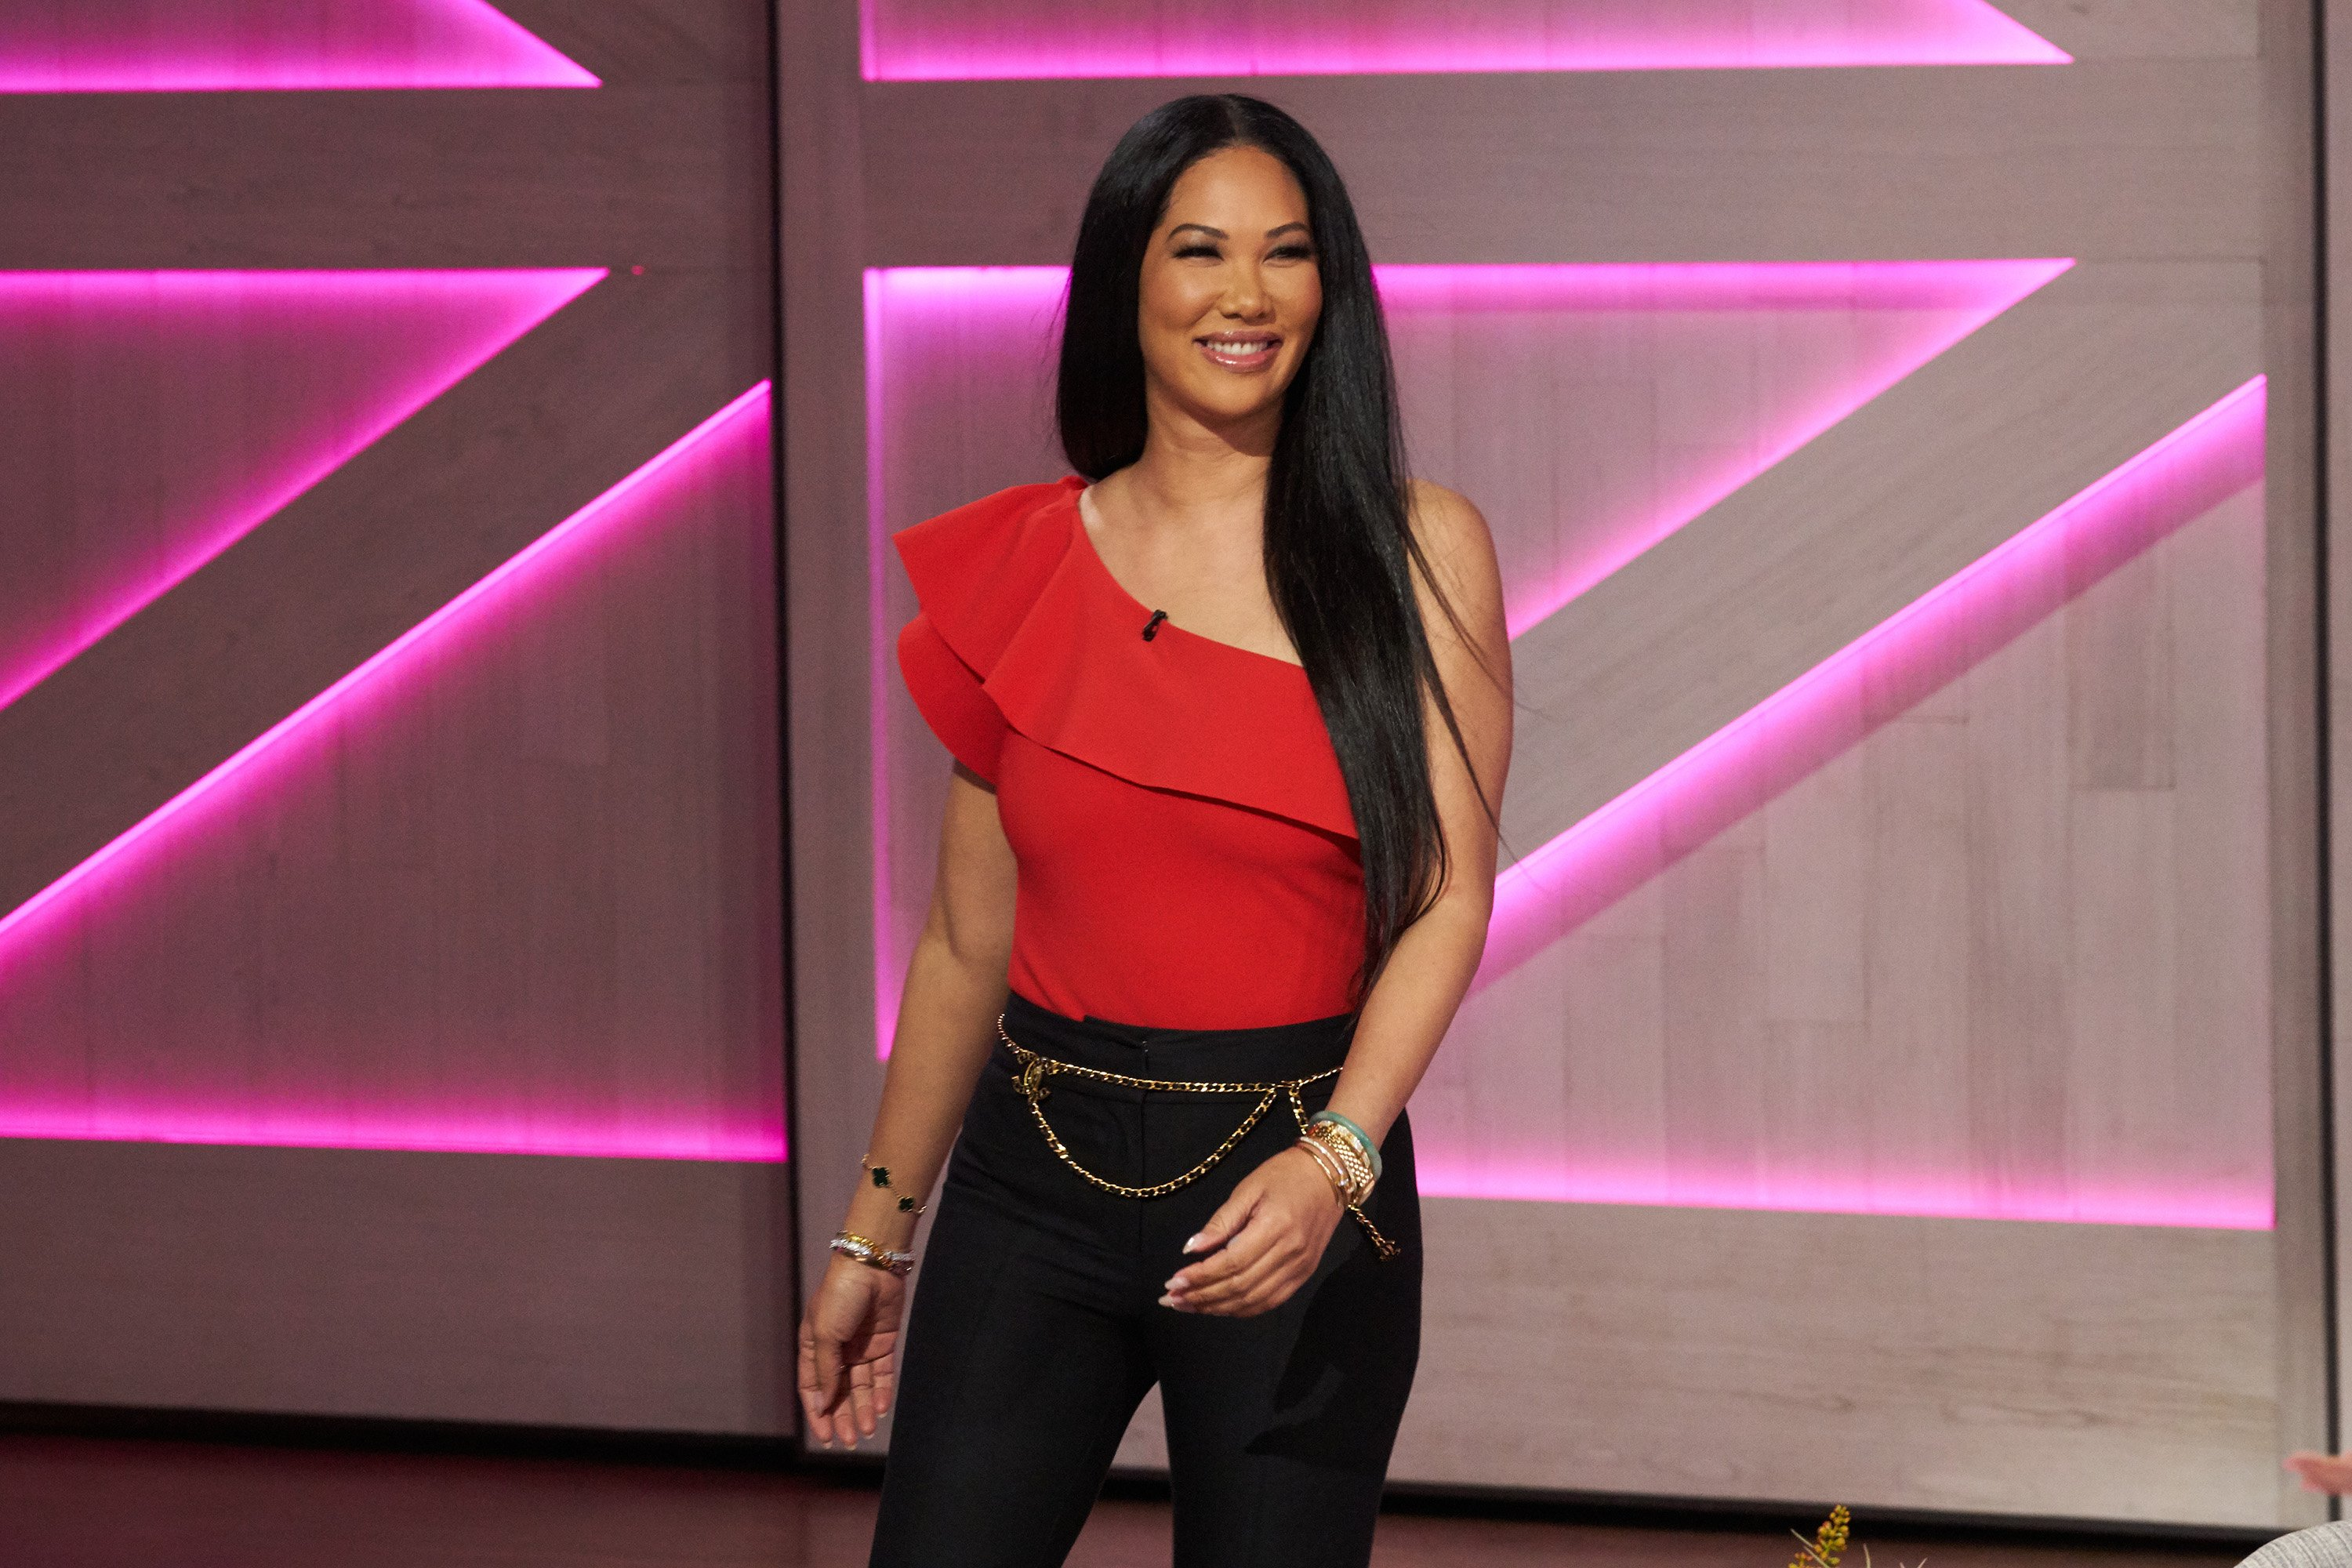 """Kimora Lee Simmons pictured on the set of """"The Kelly Clarkson Show"""" in January 2020.   Source: Getty Images"""